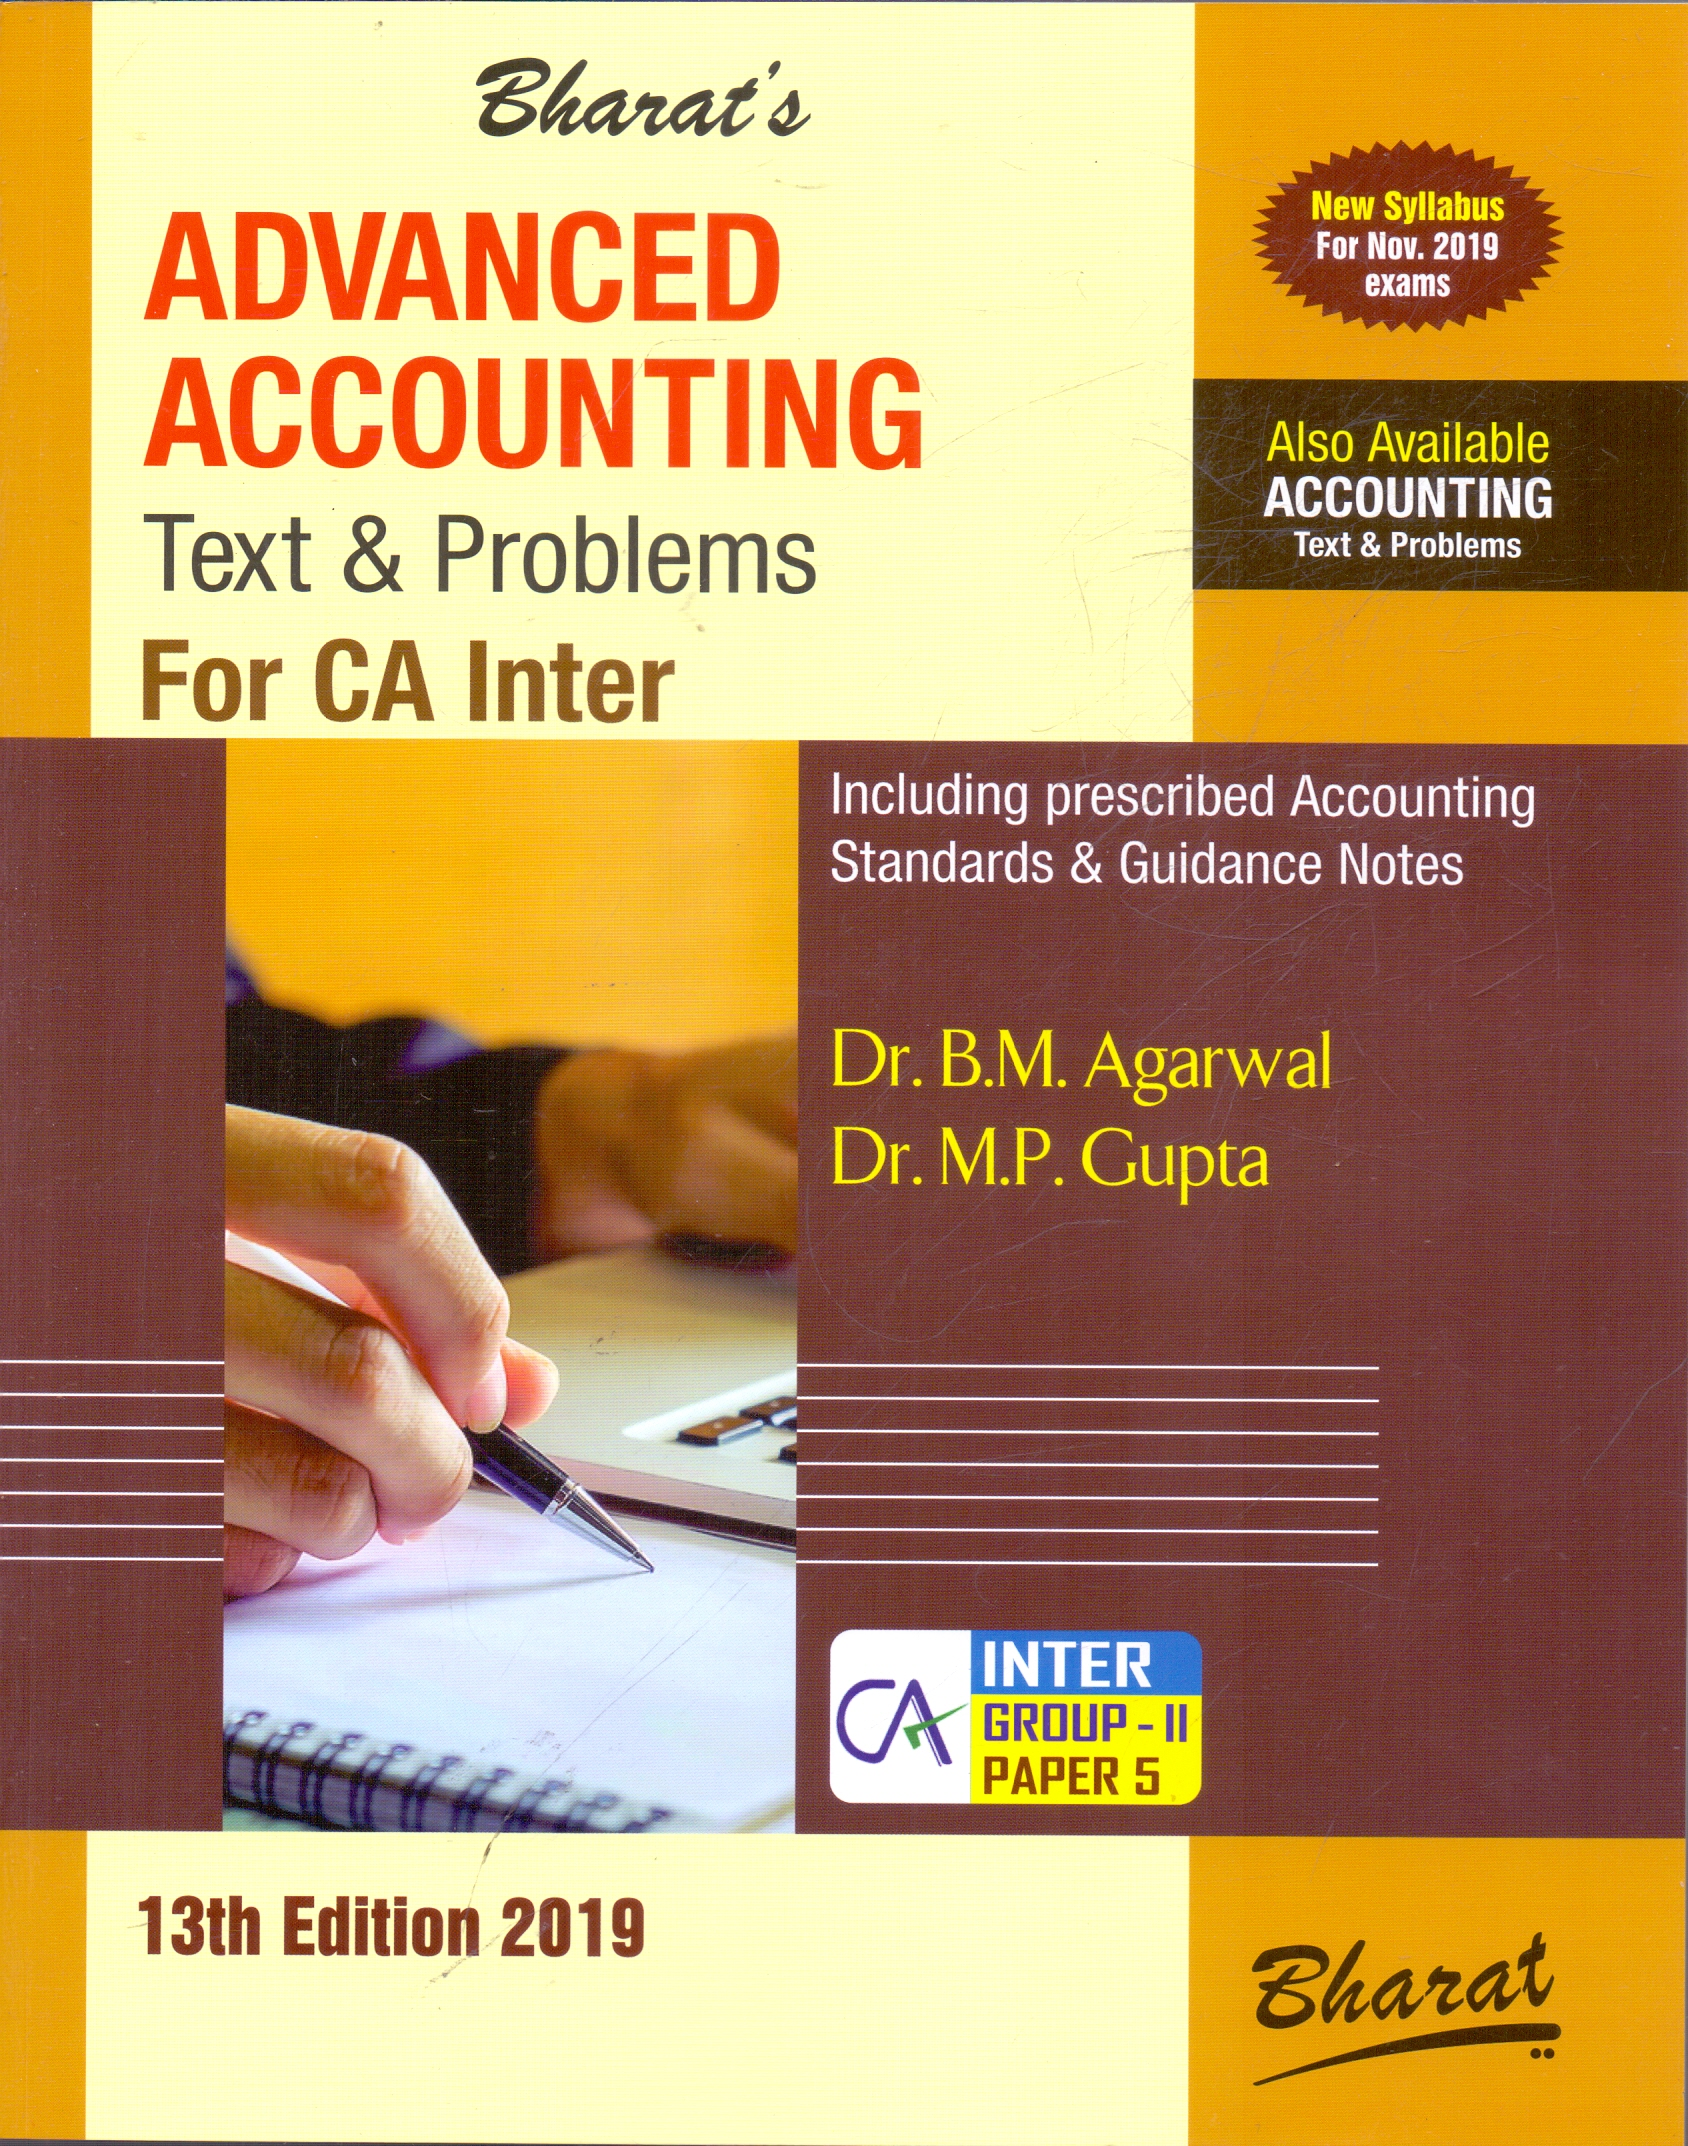 Advanced Accounting Text and Problems Including Prescribed Accounting Standards and Guidance Notes for CA Inter Group II Paper 5 New Syllabus for  November 2019 Exams